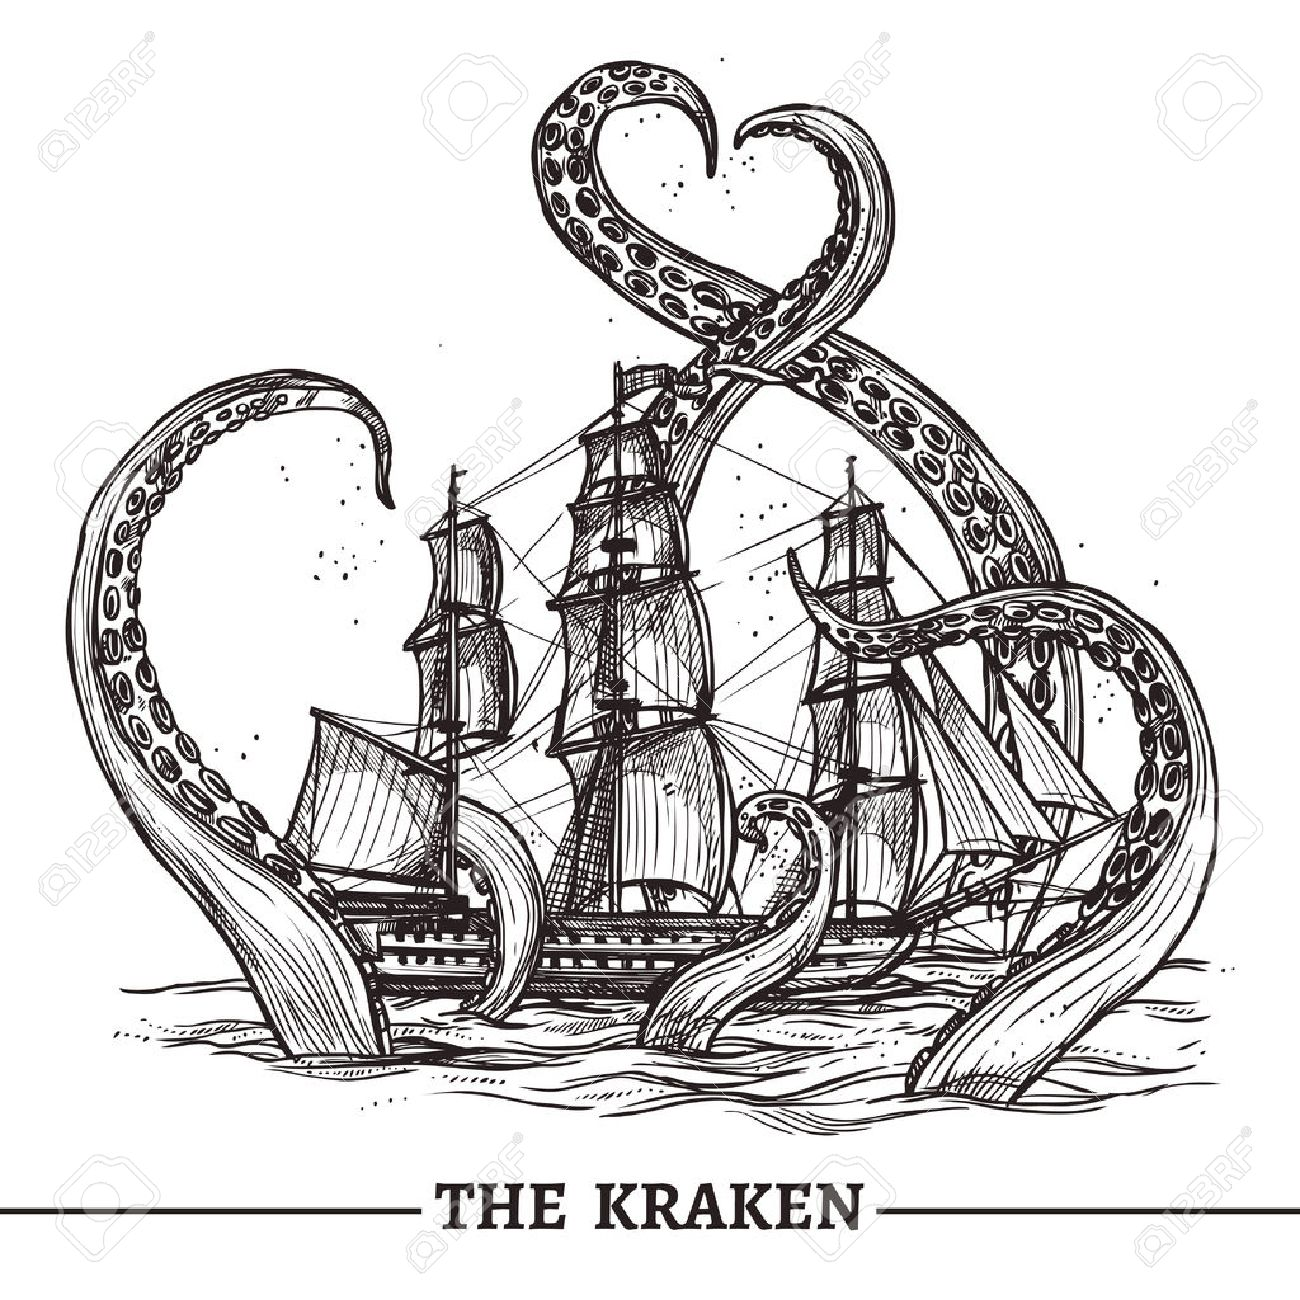 Giant octopus catches old style sail ship hand drawn vector illustration - 45347899